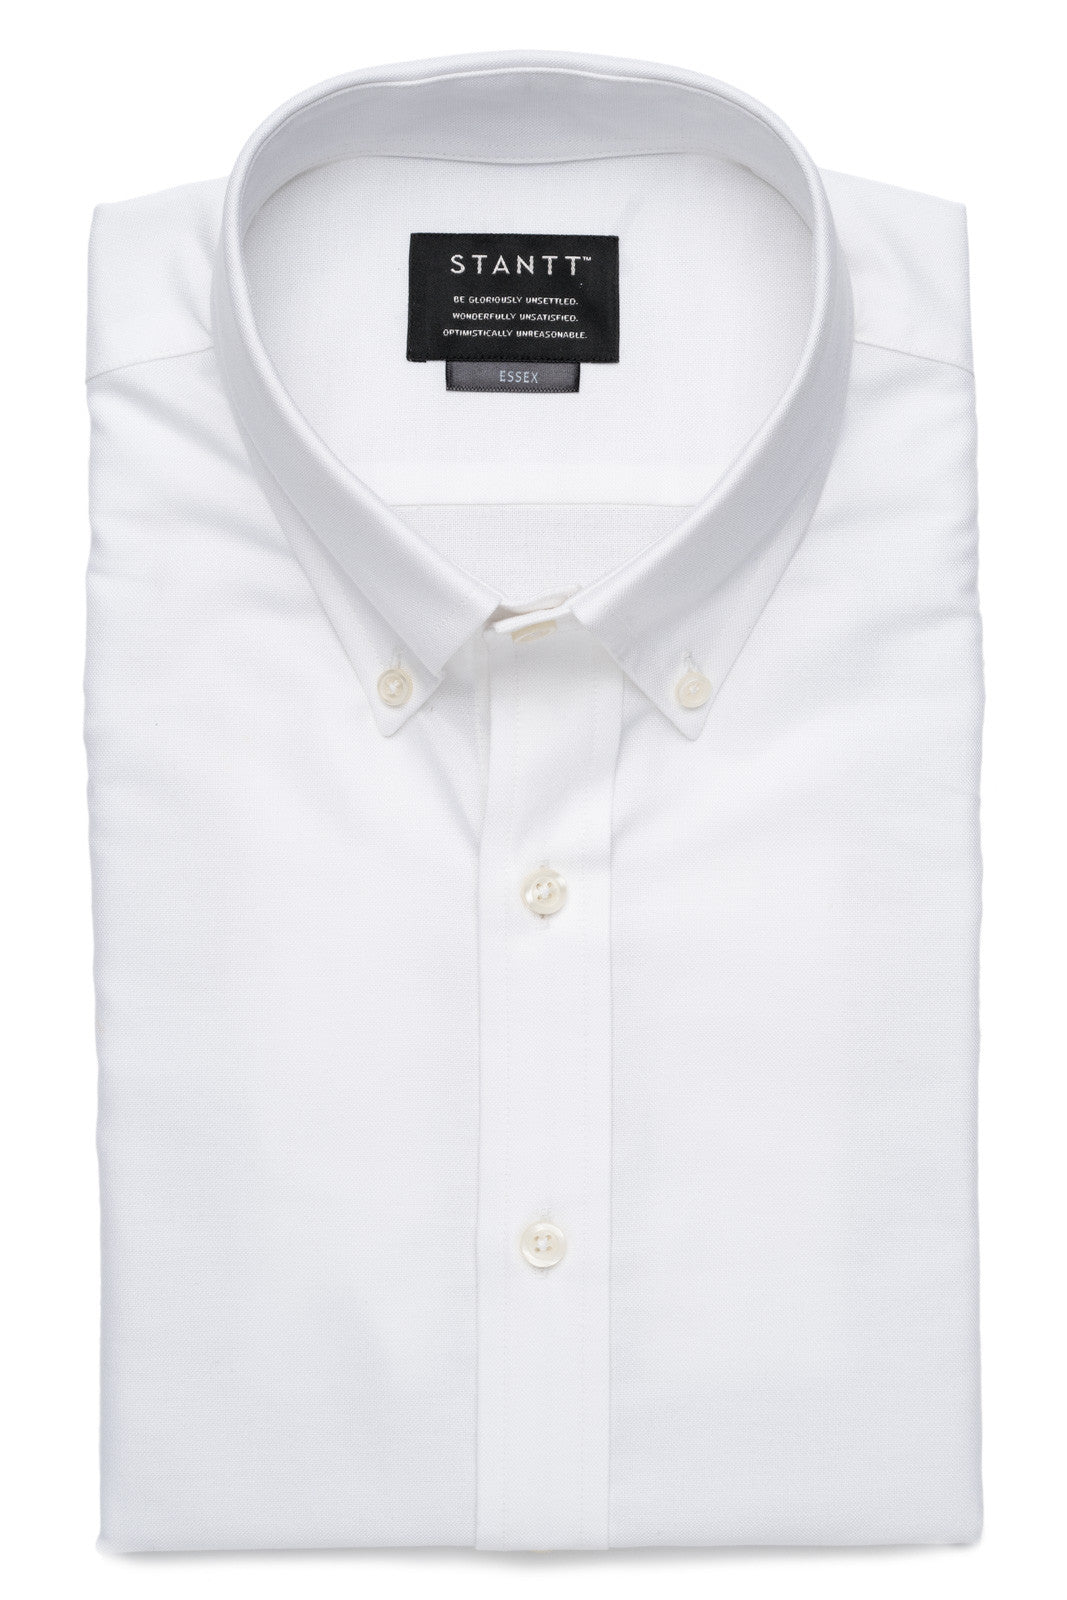 White Oxford: Button-Down Collar, Barrel Cuff